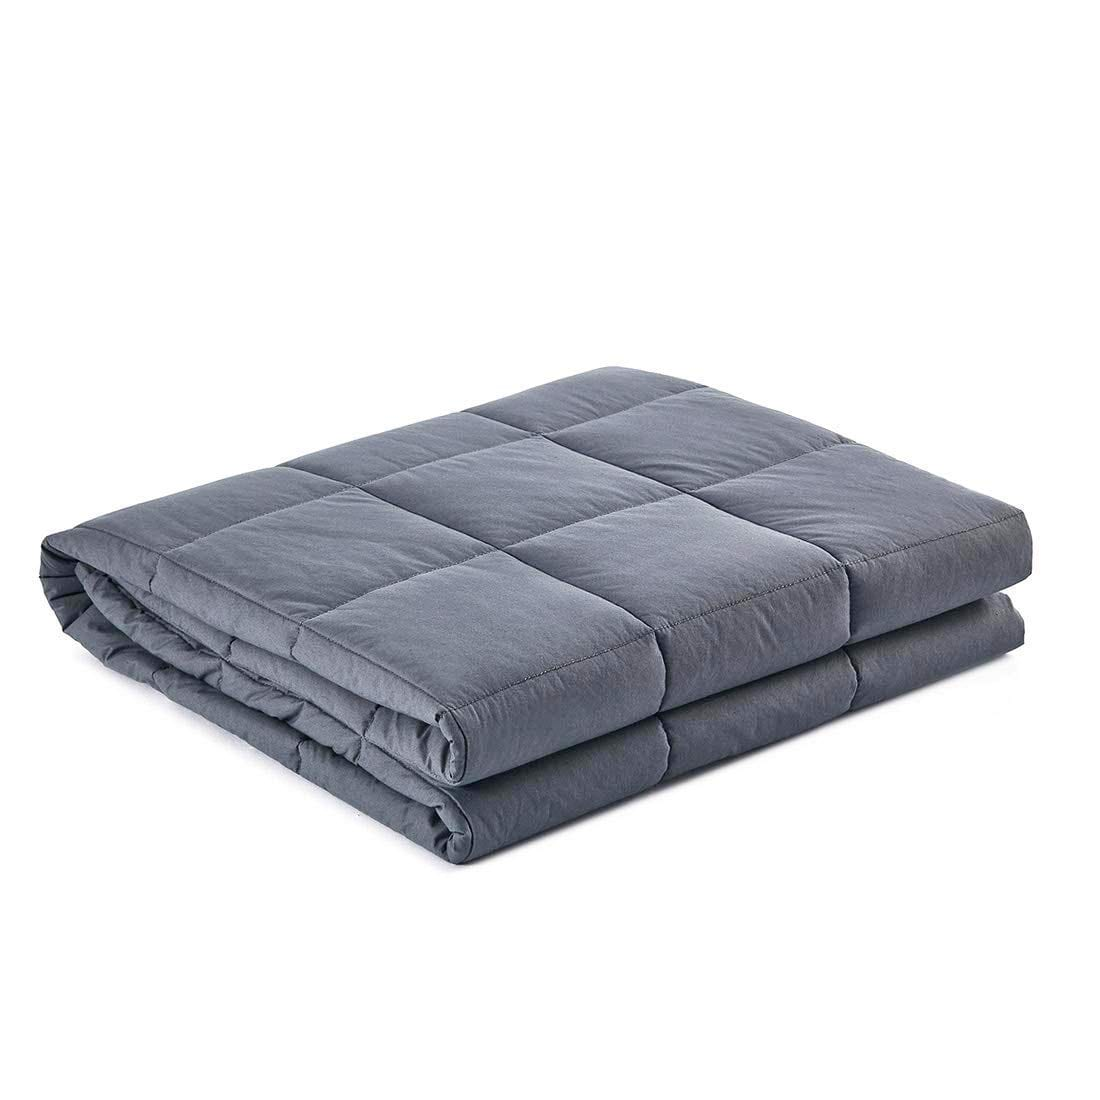 CuteKing Best Weighted Blanket Review by www.snoremagazine.com